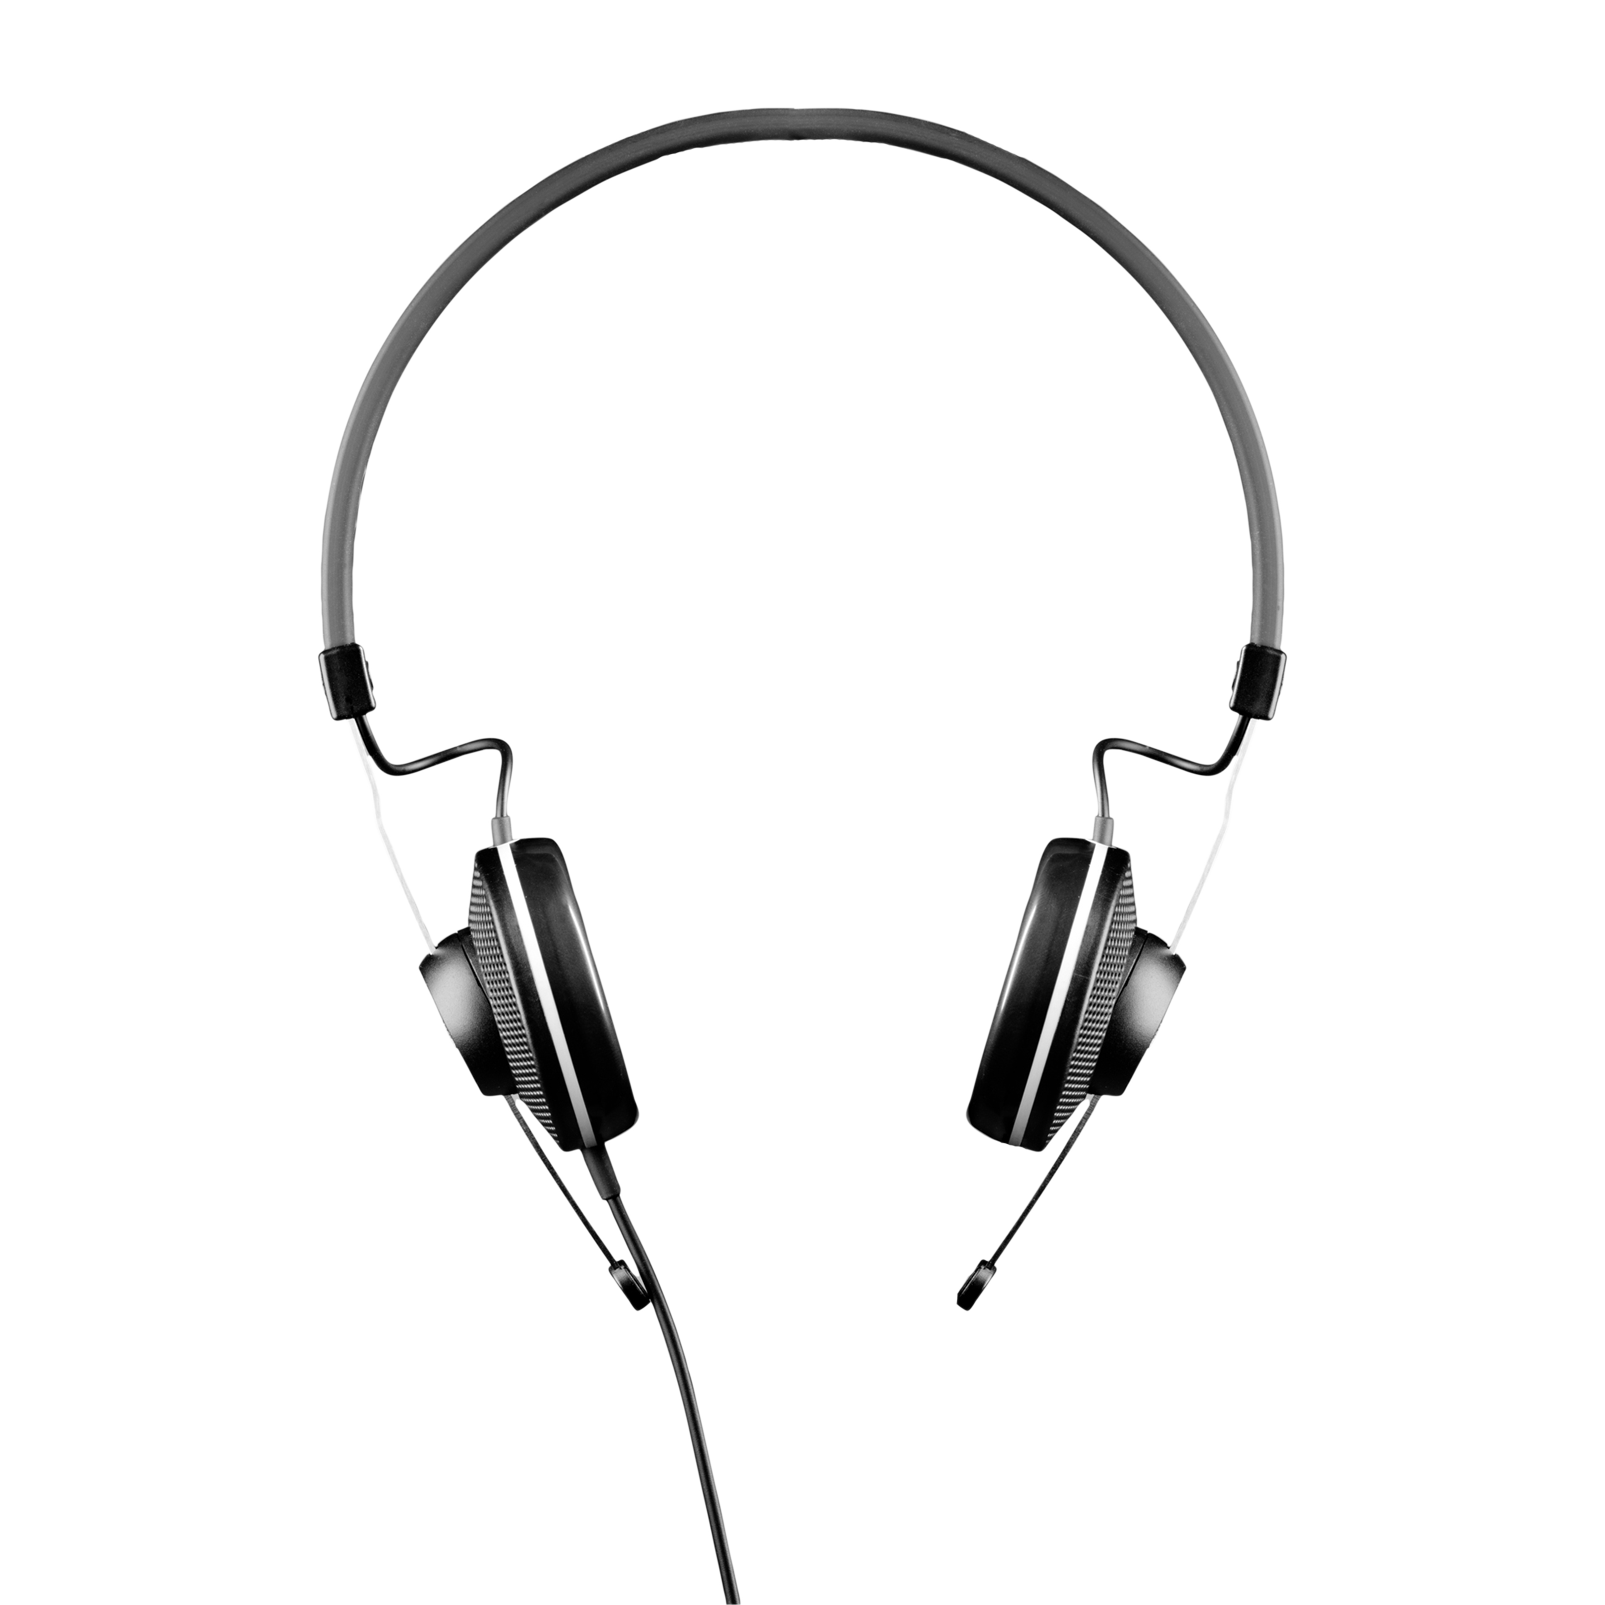 K15 (B-Stock) - Black - High-performance conference headphones - Front